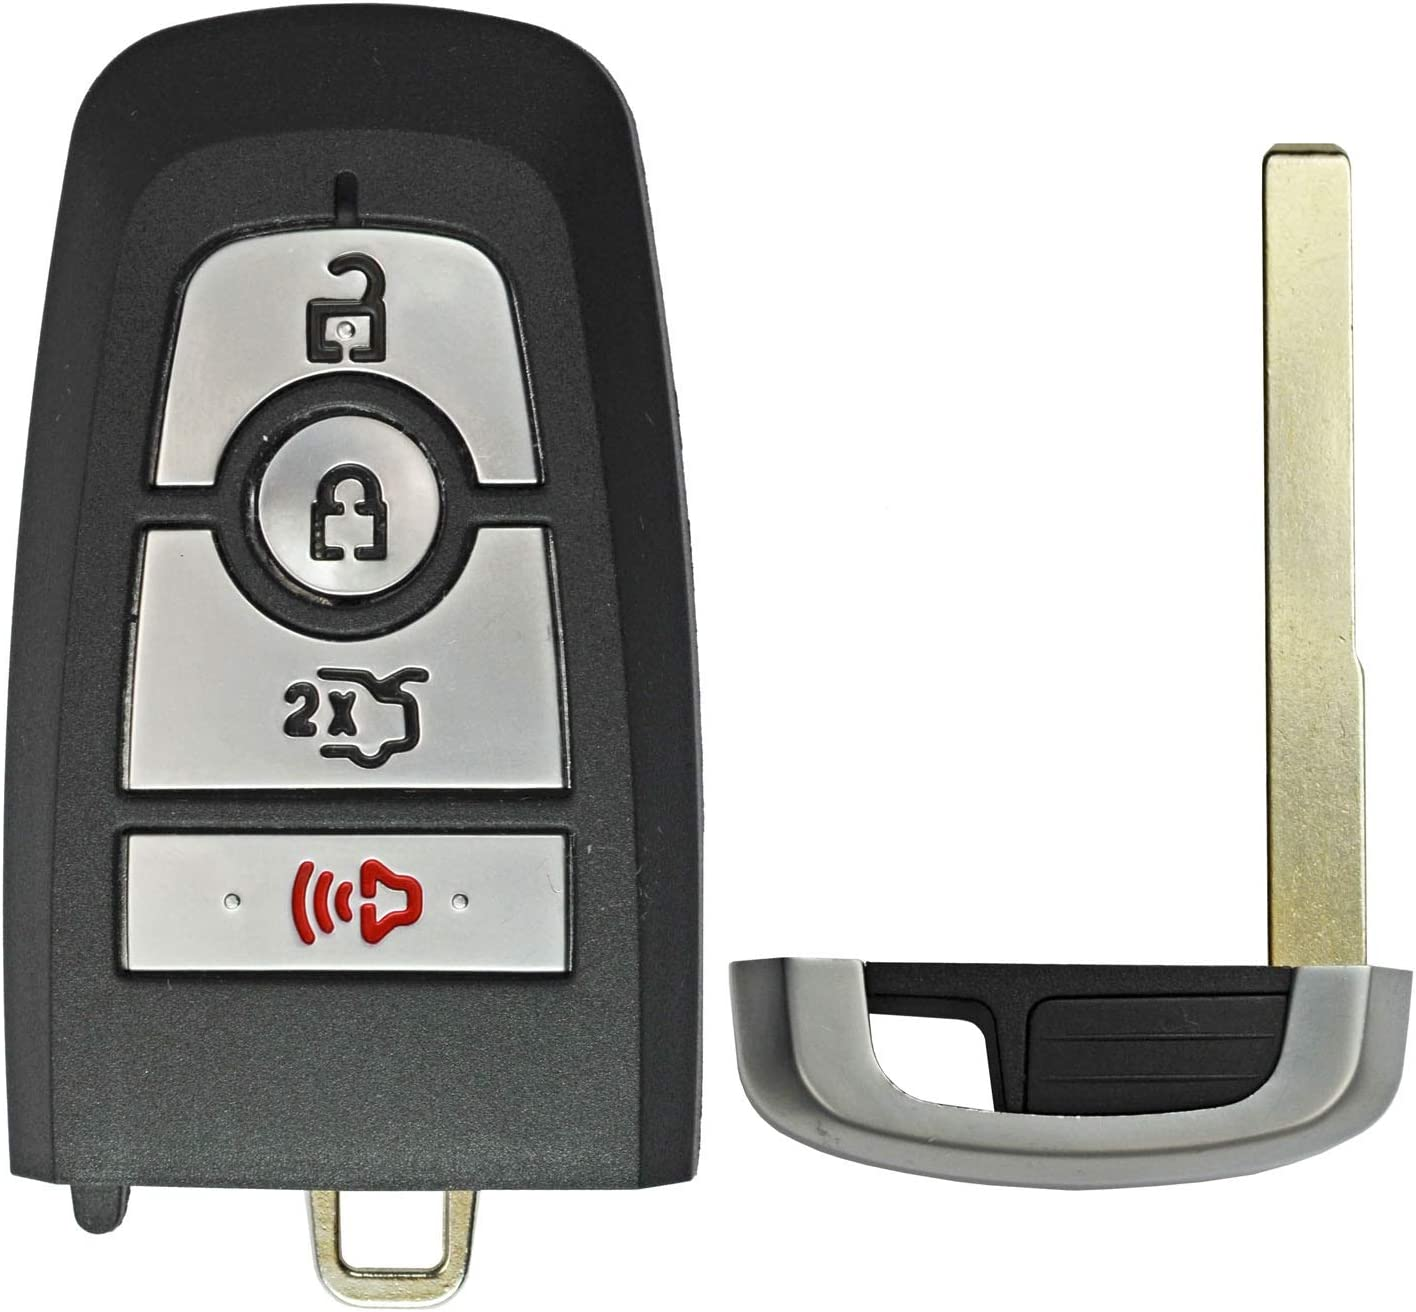 QualityKeylessPlus Remote Replacement Case 4 Button Ford FCC ID M3N-A2C31243800